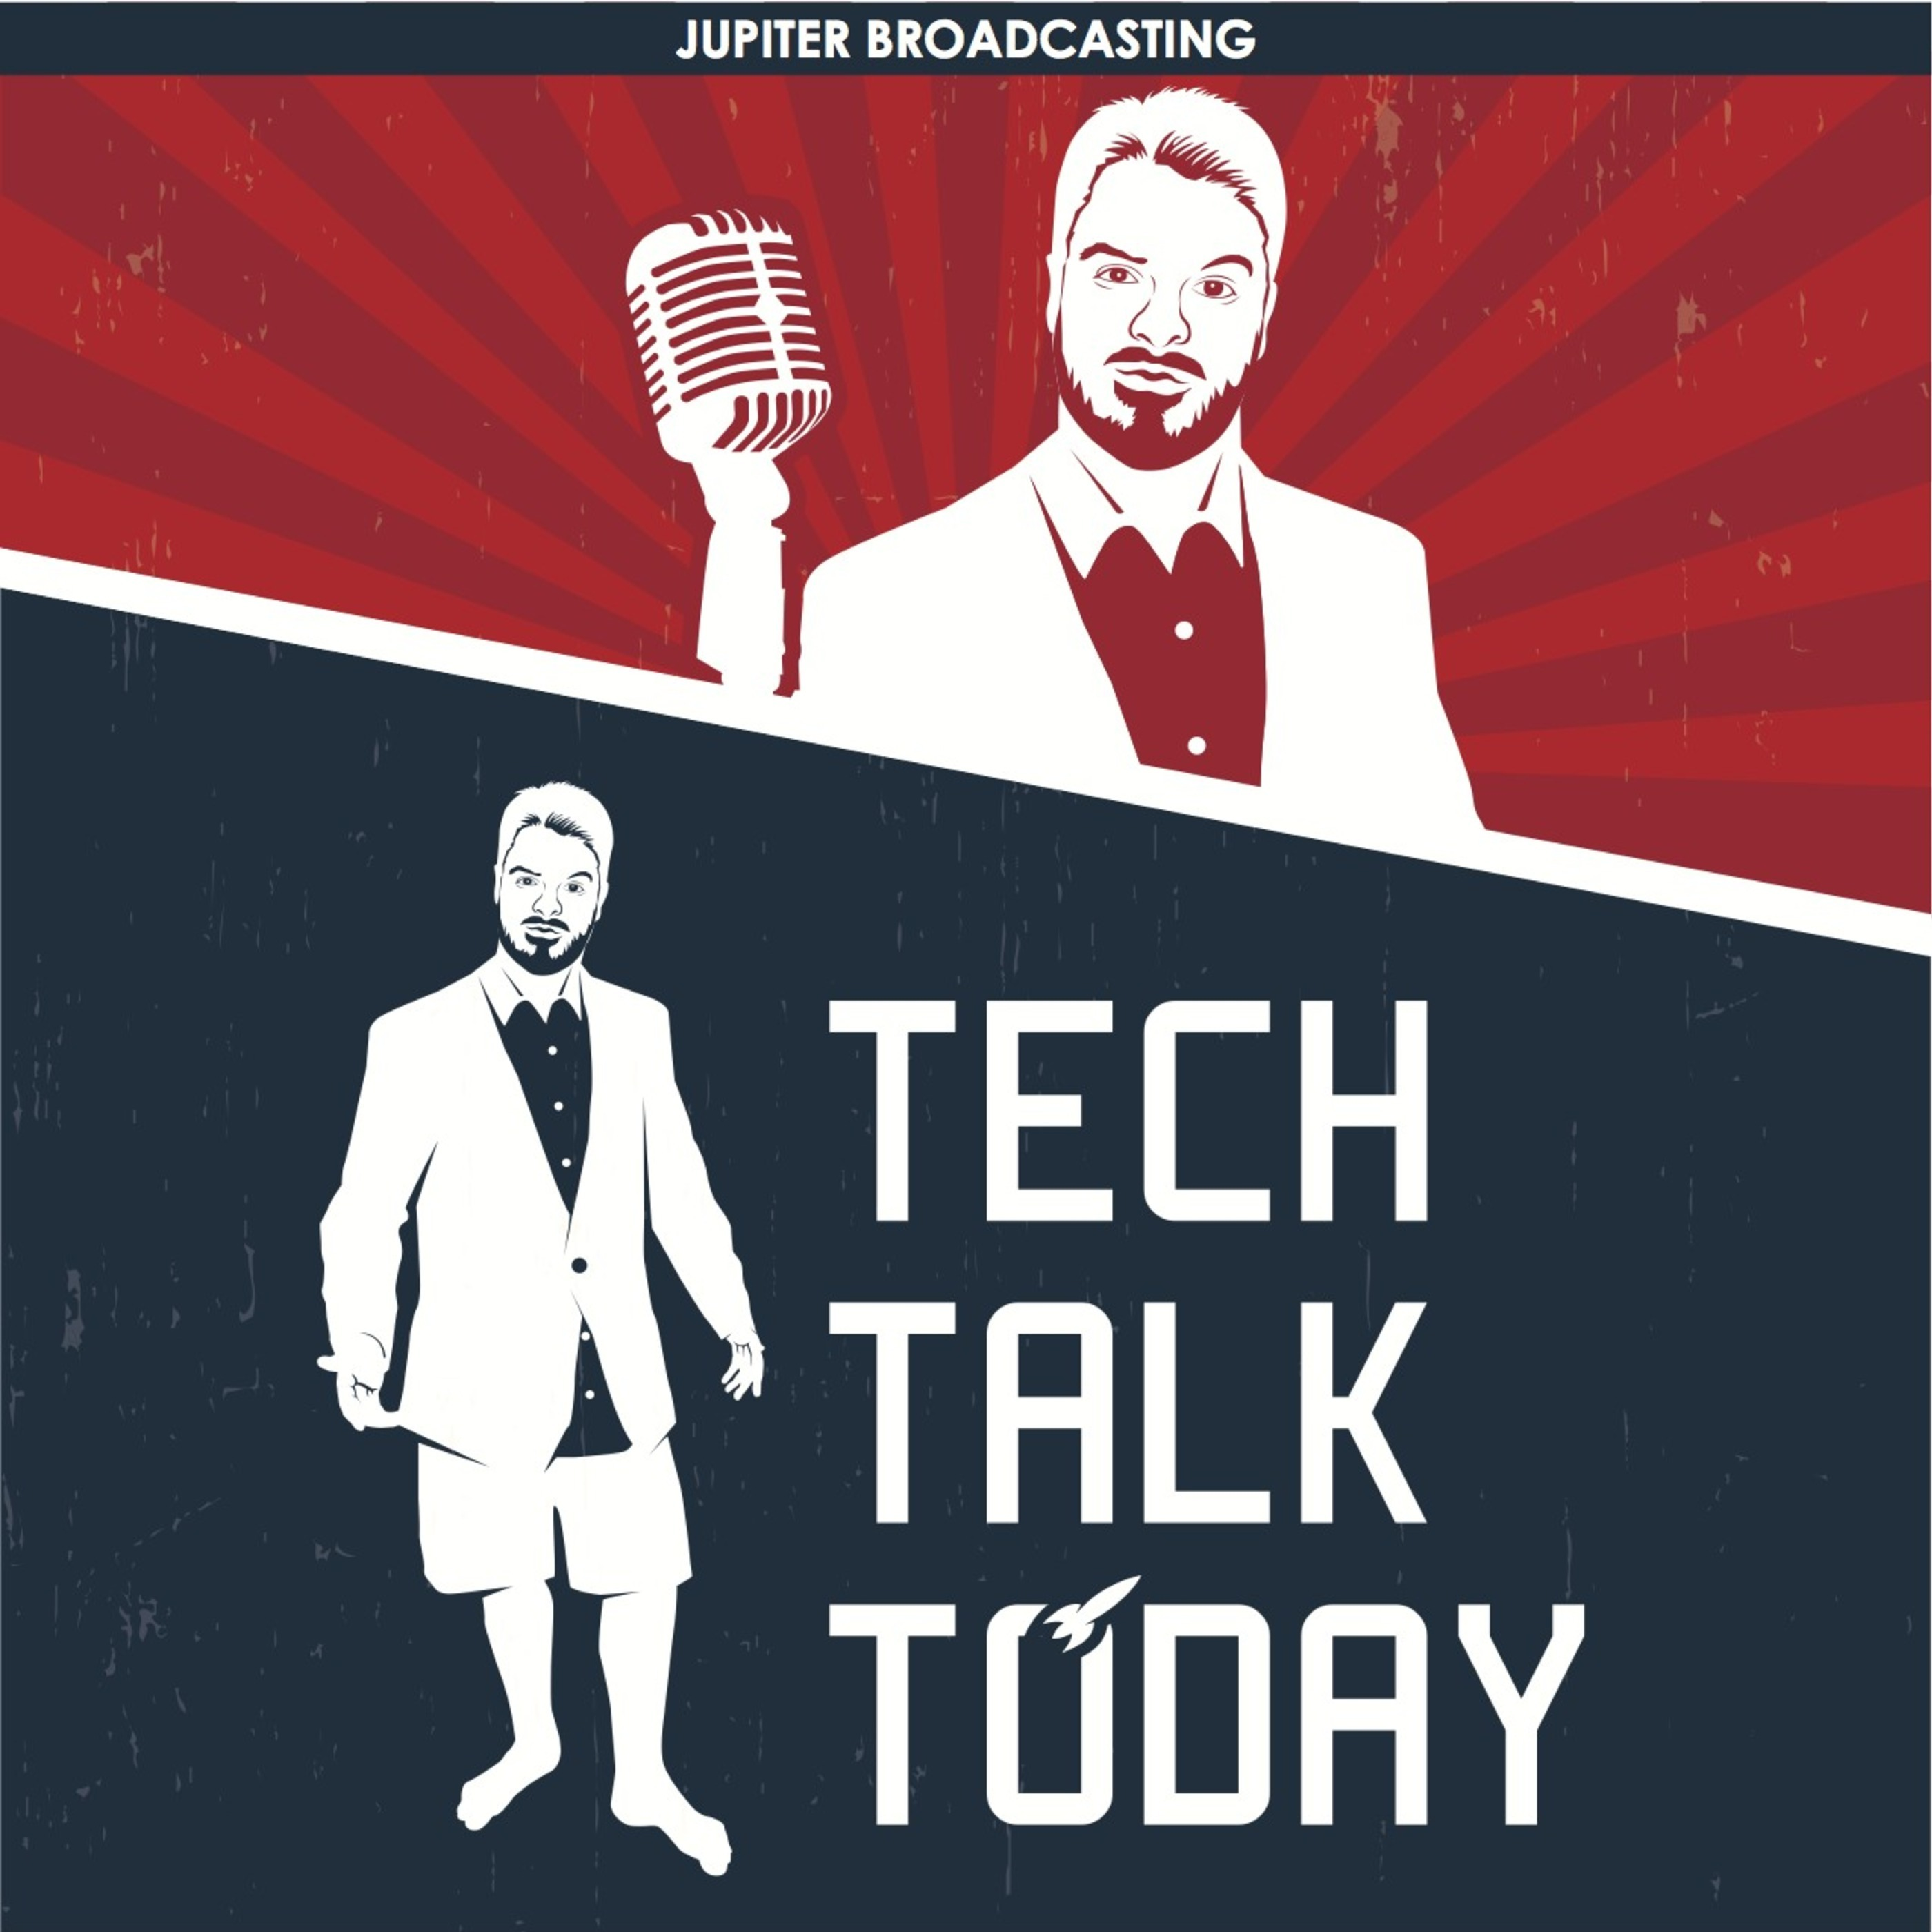 Episode 9: Apple's Pebble Prejudice | Tech Talk Today 162